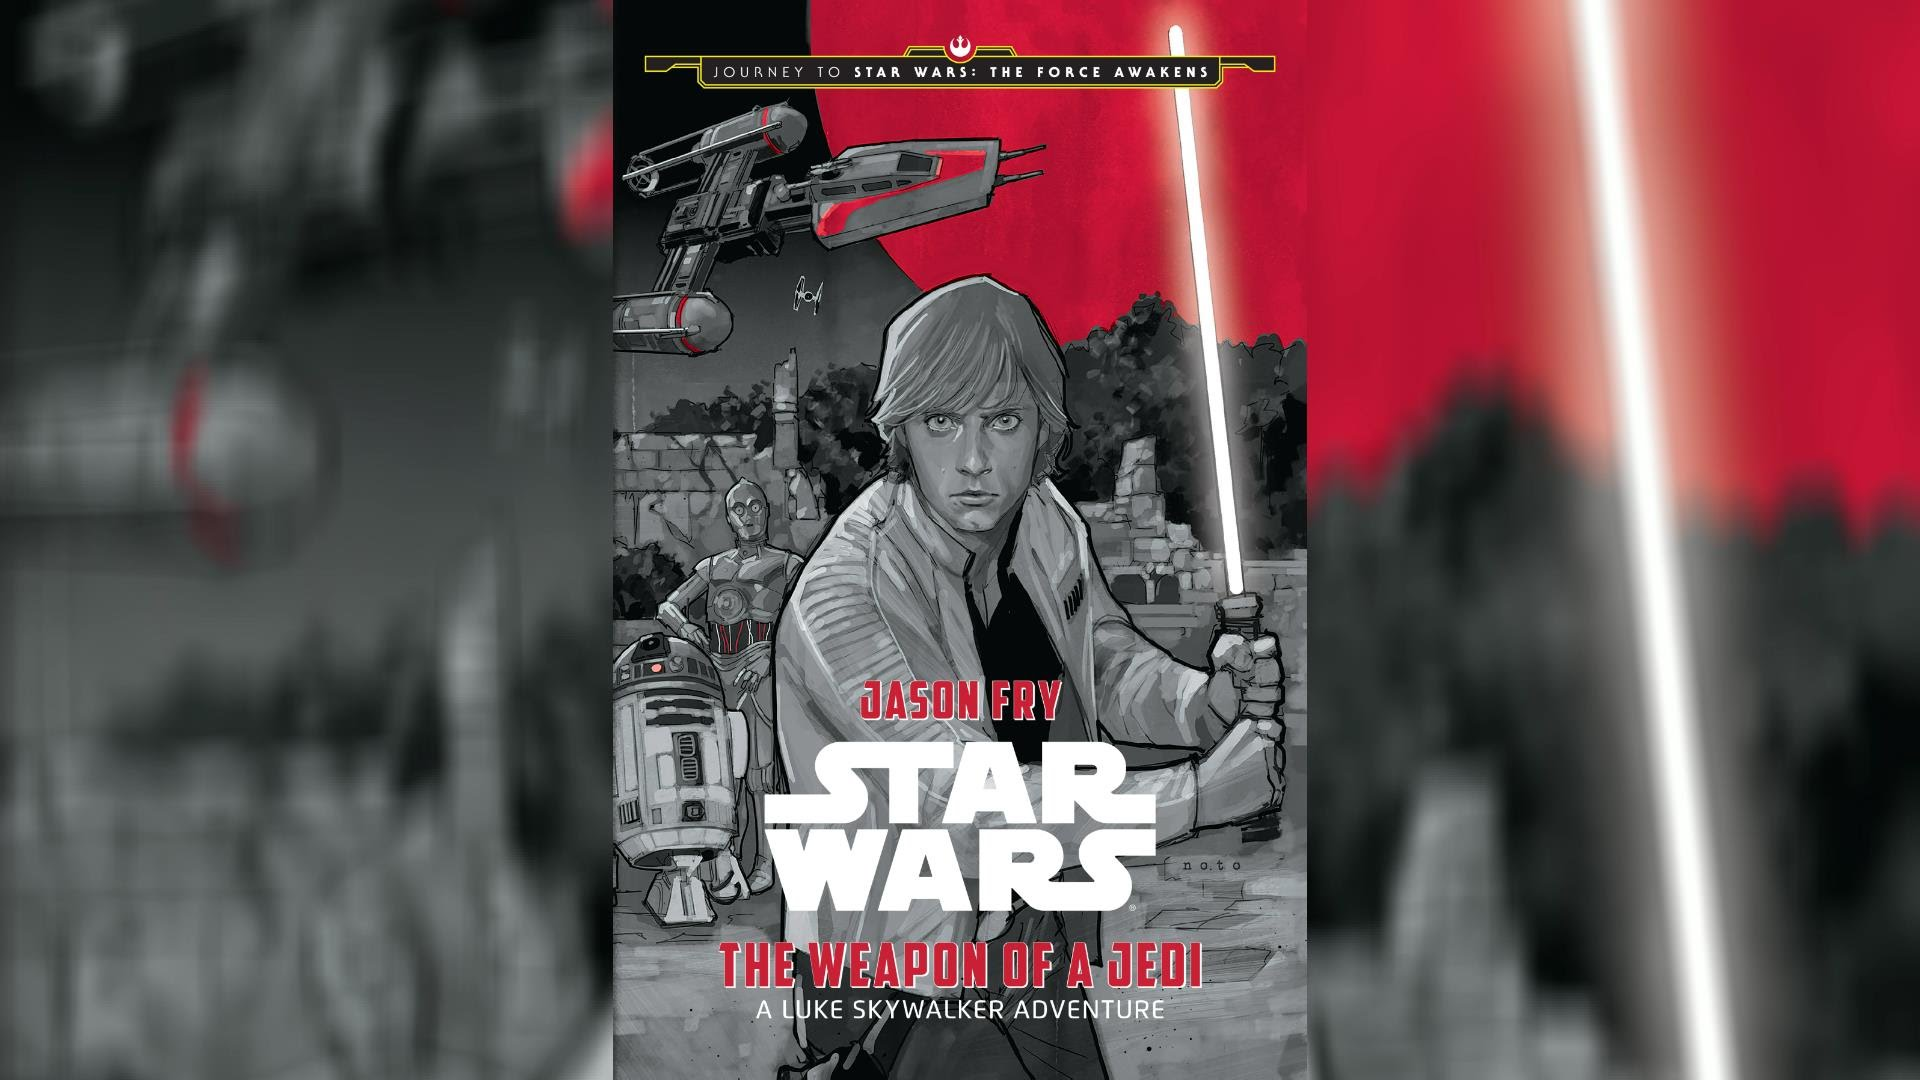 Star Wars The Weapon of a Jedi